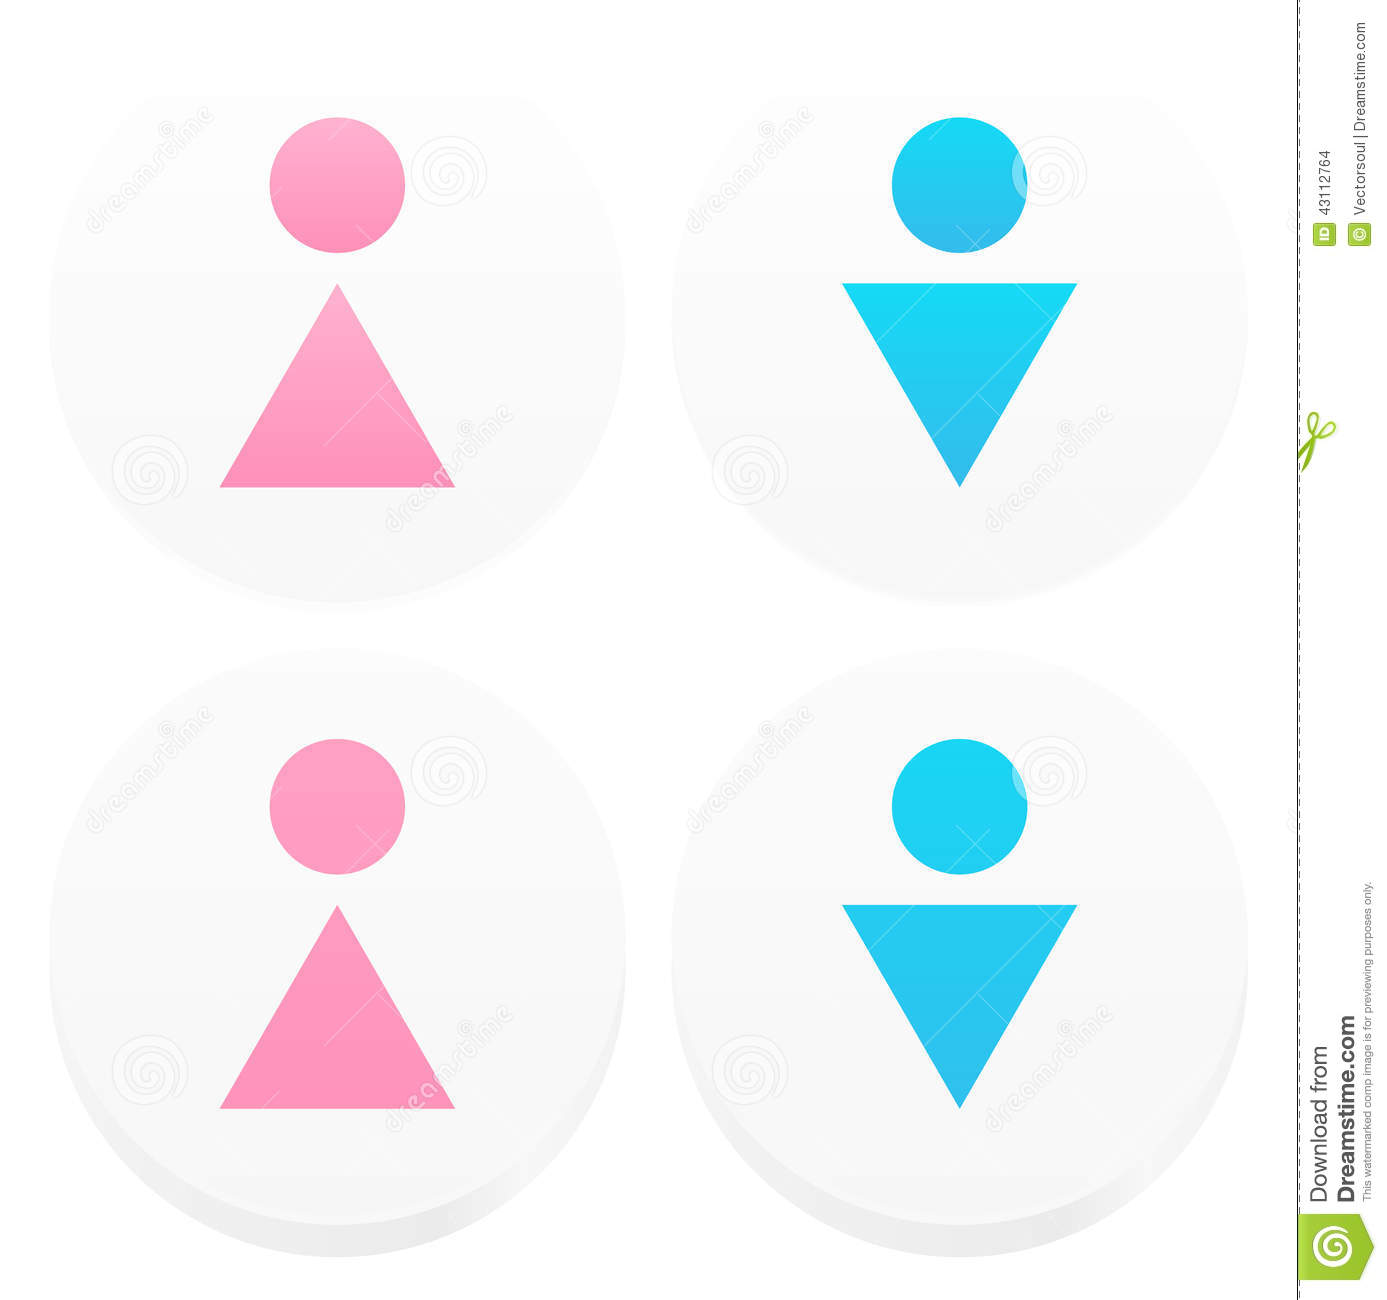 Symbolic male, female restroom signs